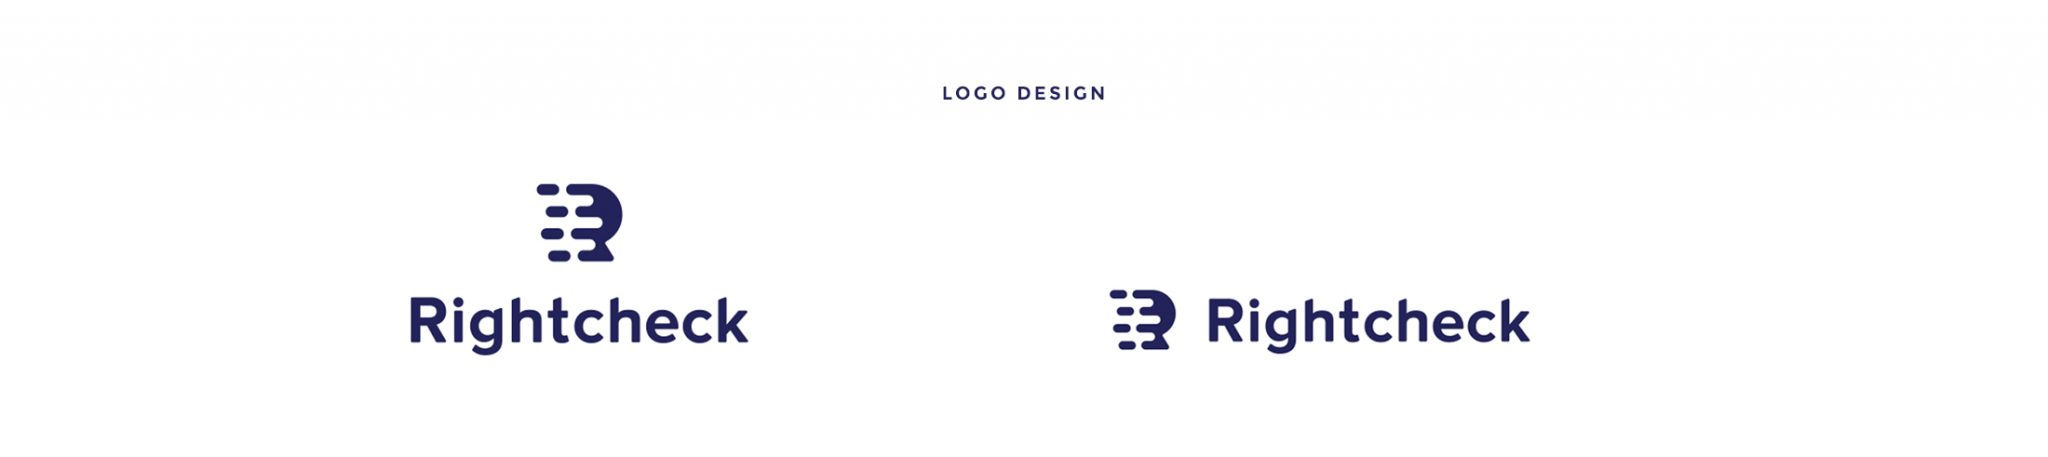 rightcheckLogo